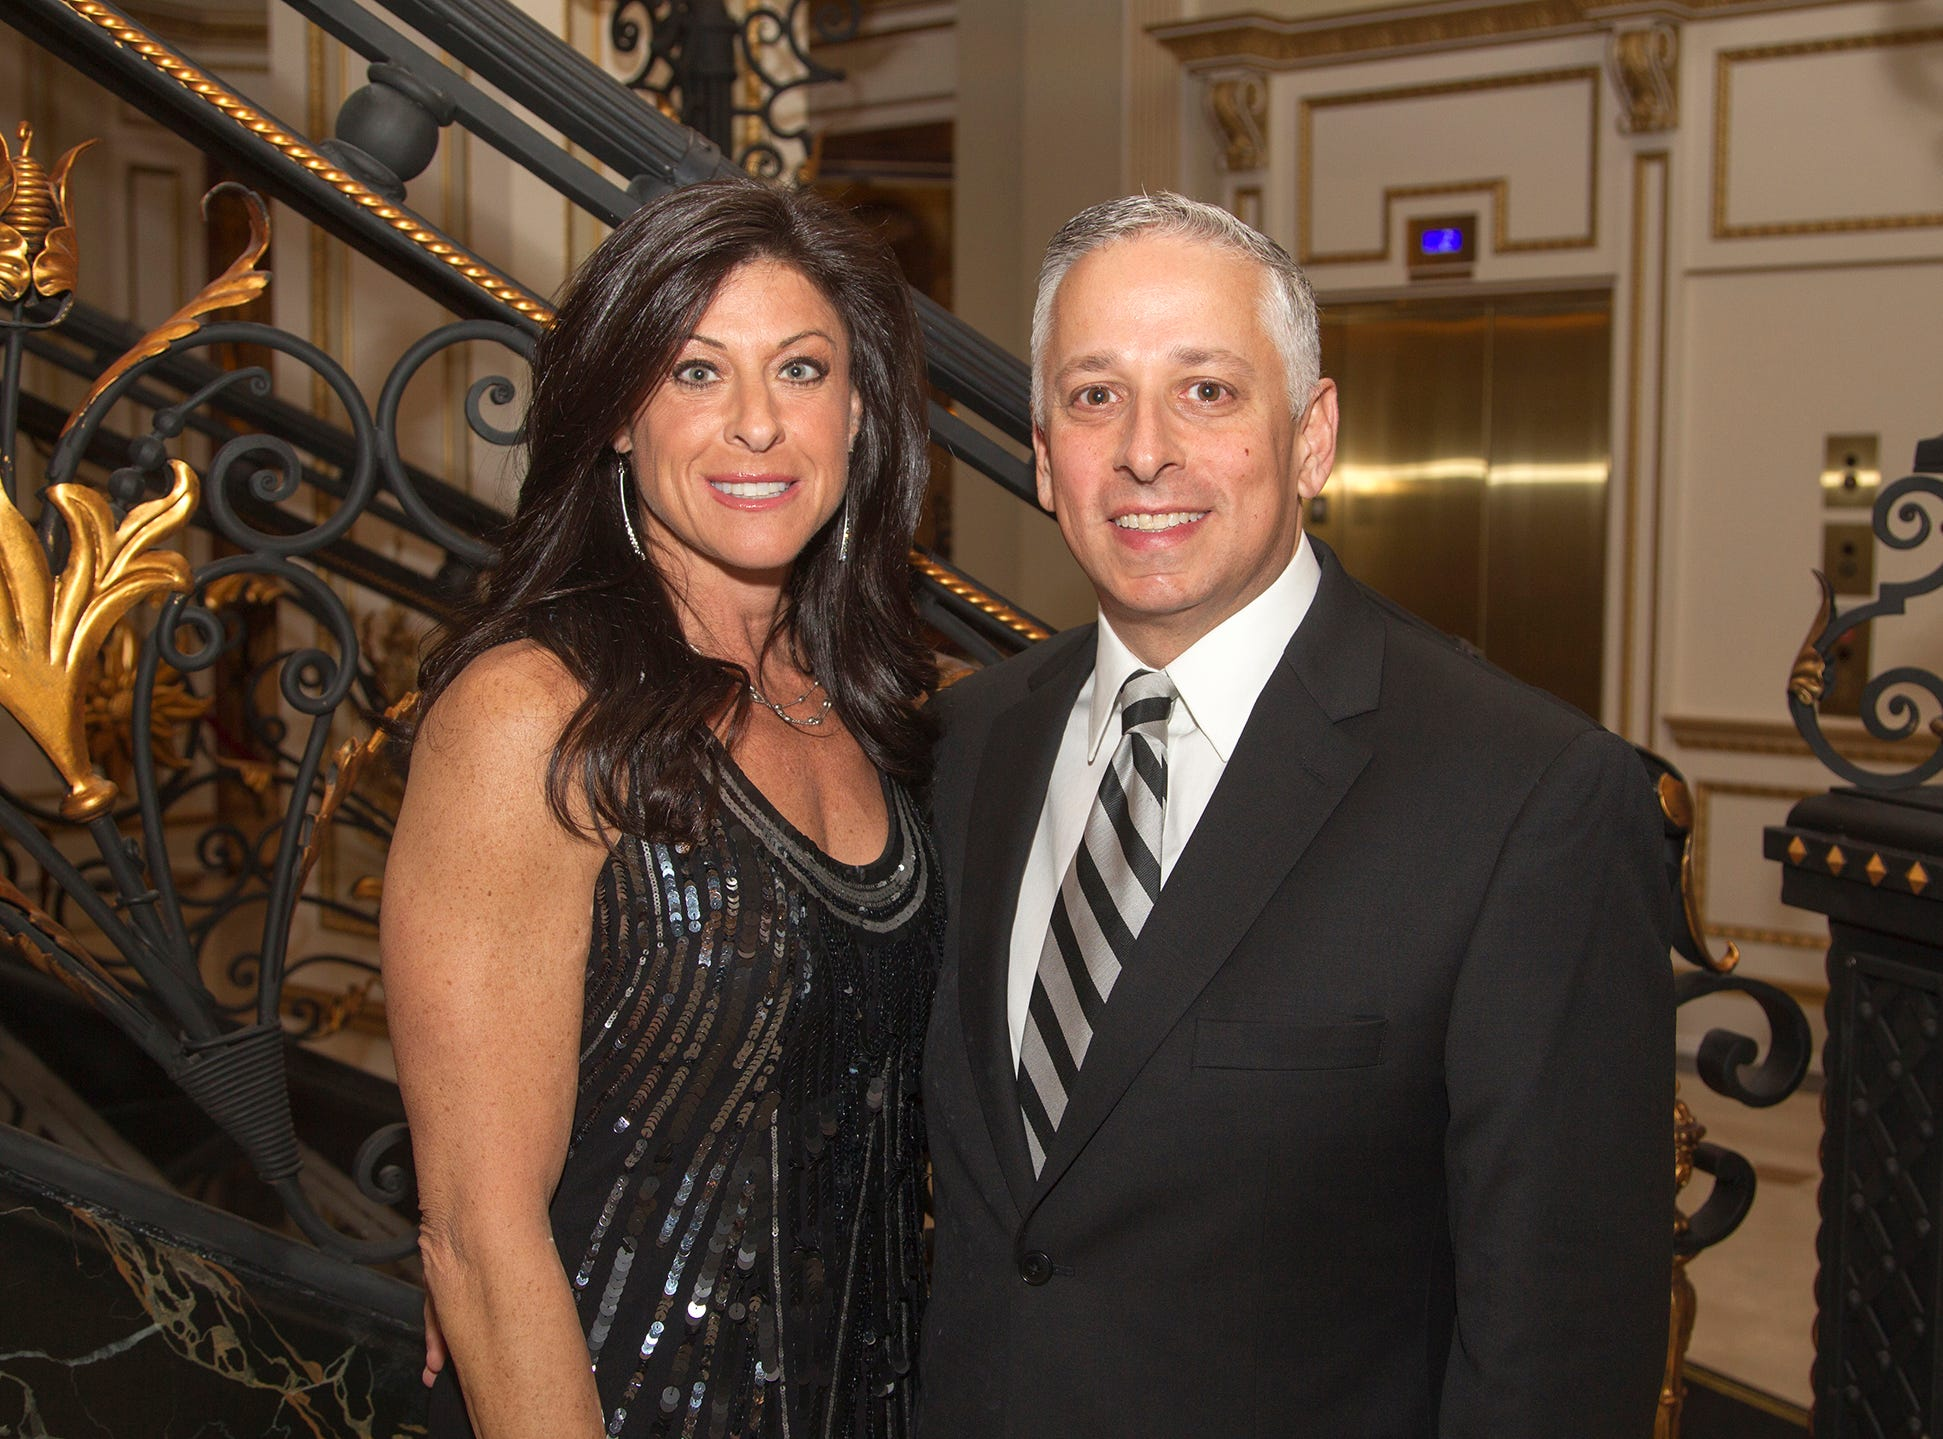 Allison and Todd Aronson. The 72nd Annual Valley Ball gala at The Legacy Castle in Pompton Plains. 11/16/2018